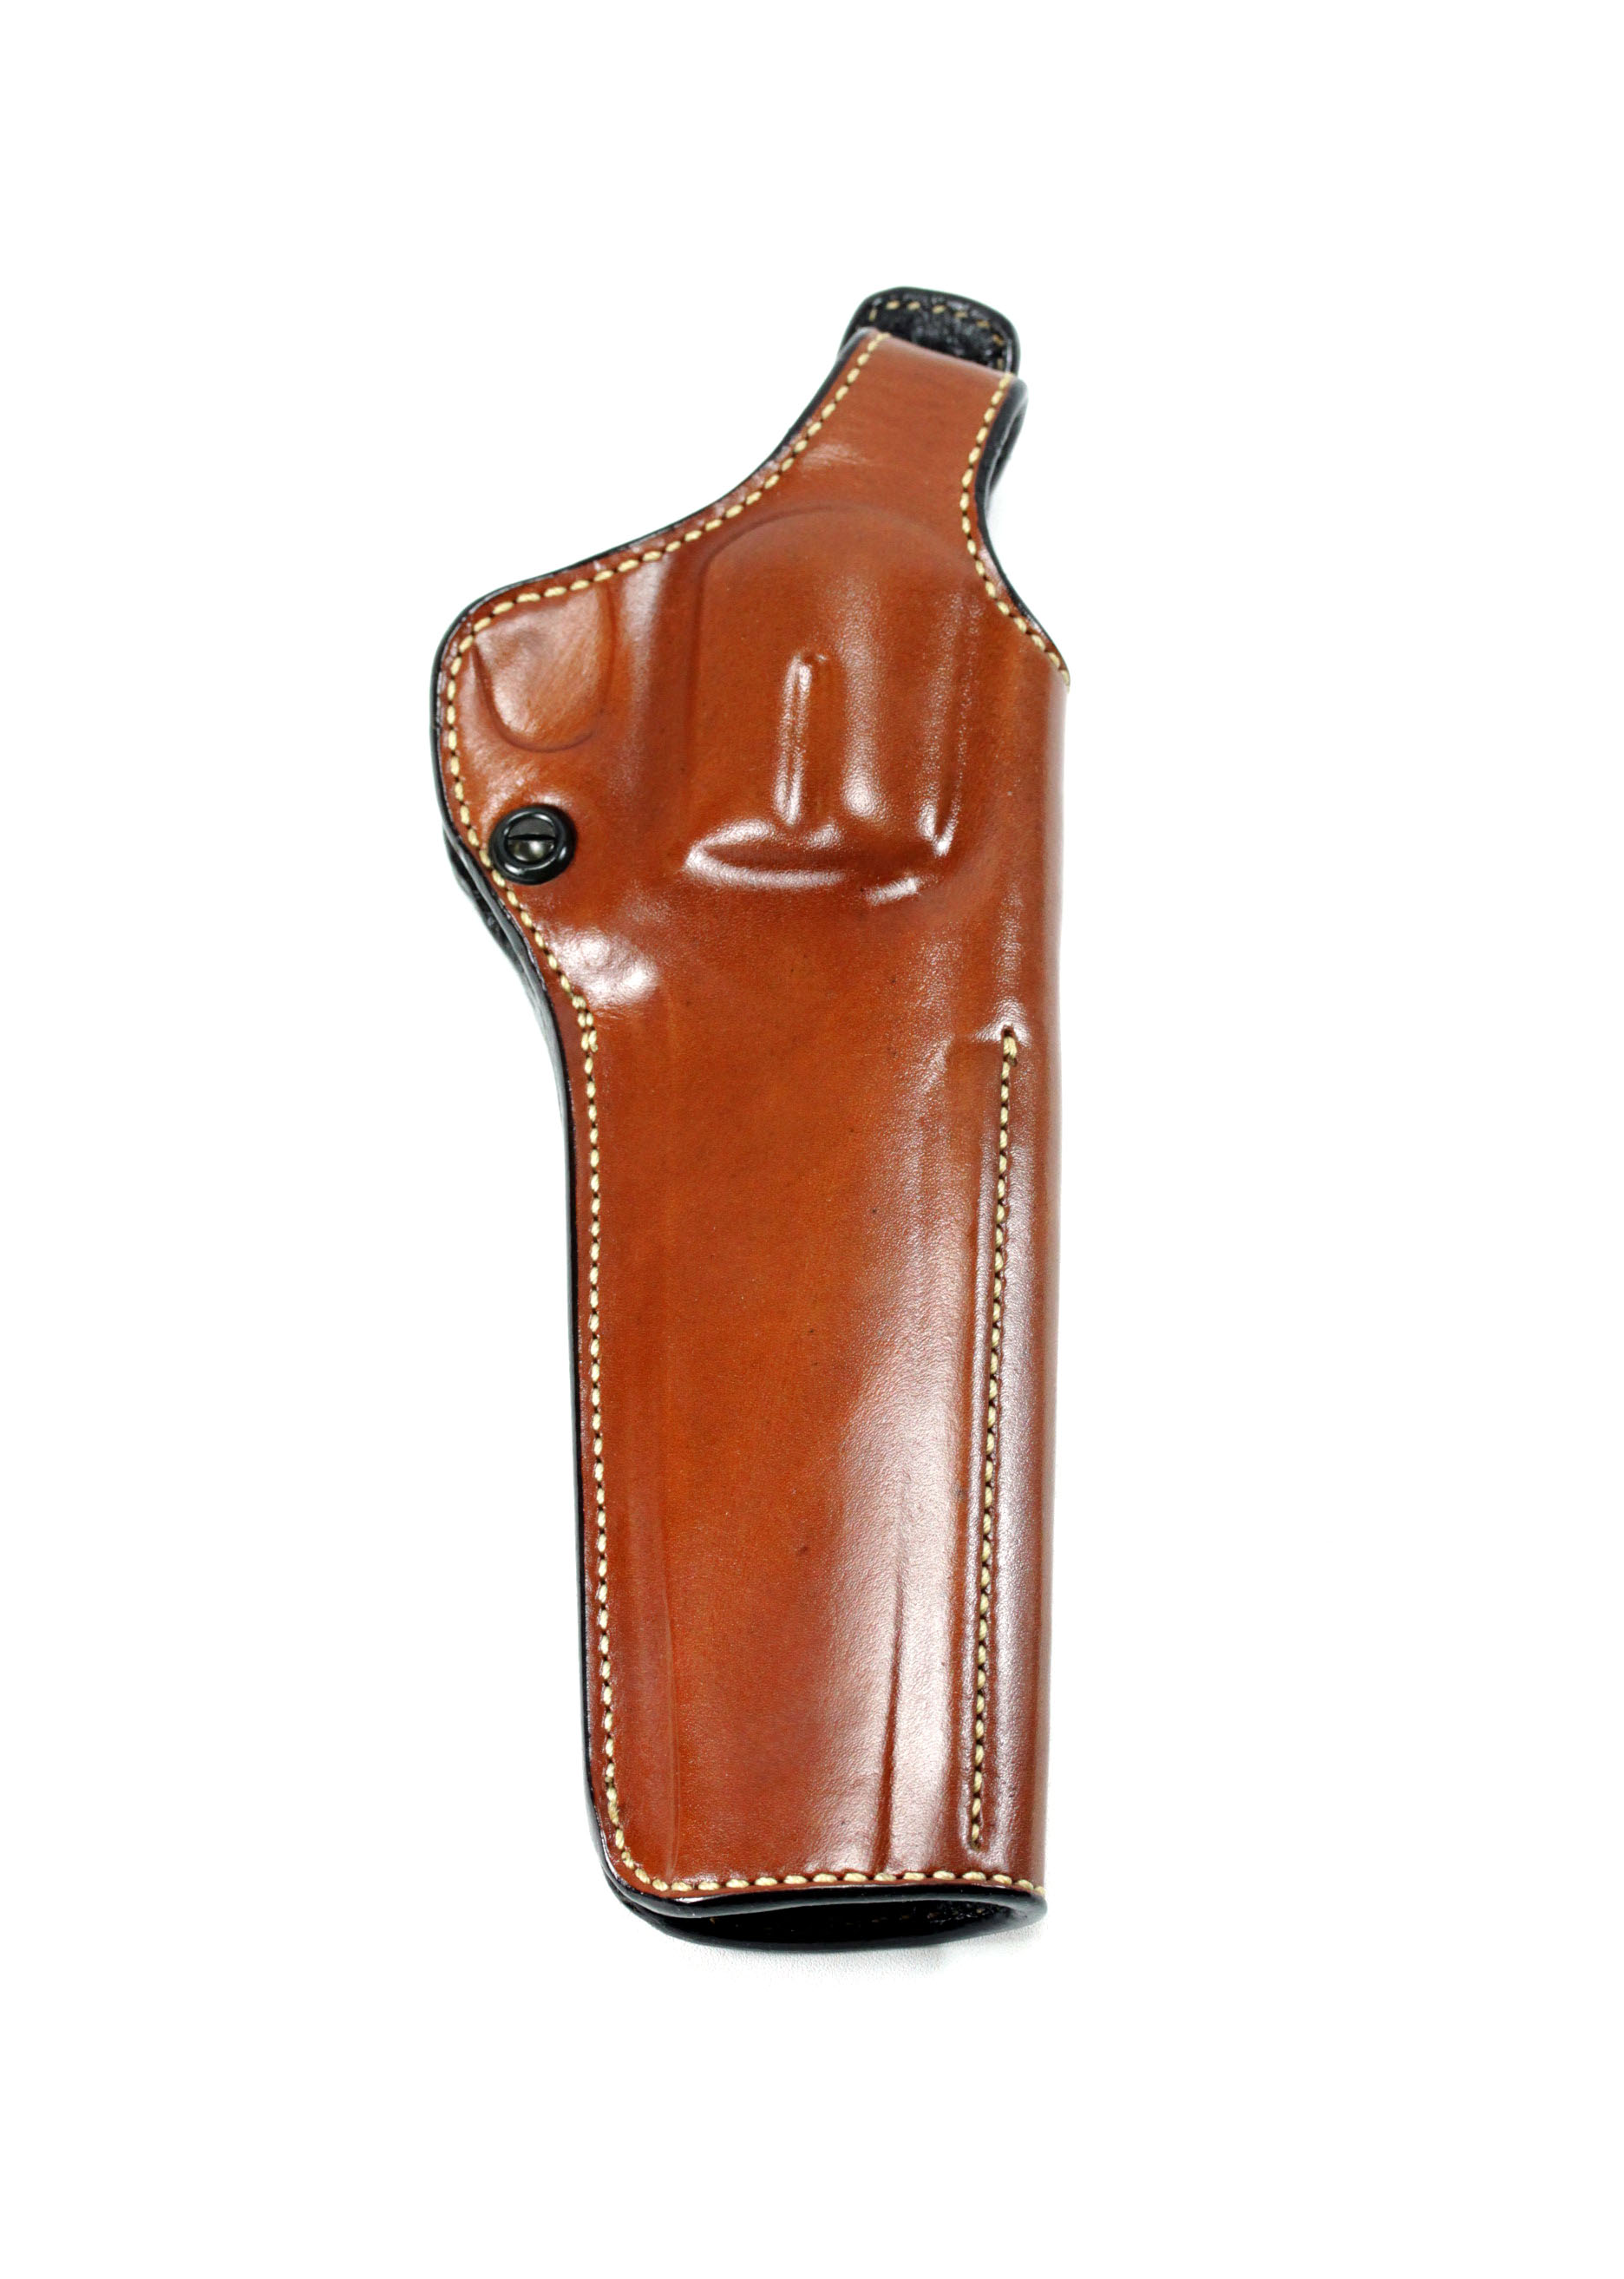 Galco Phoenix Revolver Holster Fits Smith Wesson N Frame Models 27, 28, 29,  610, 629, 929 6 5 Inch PHX128